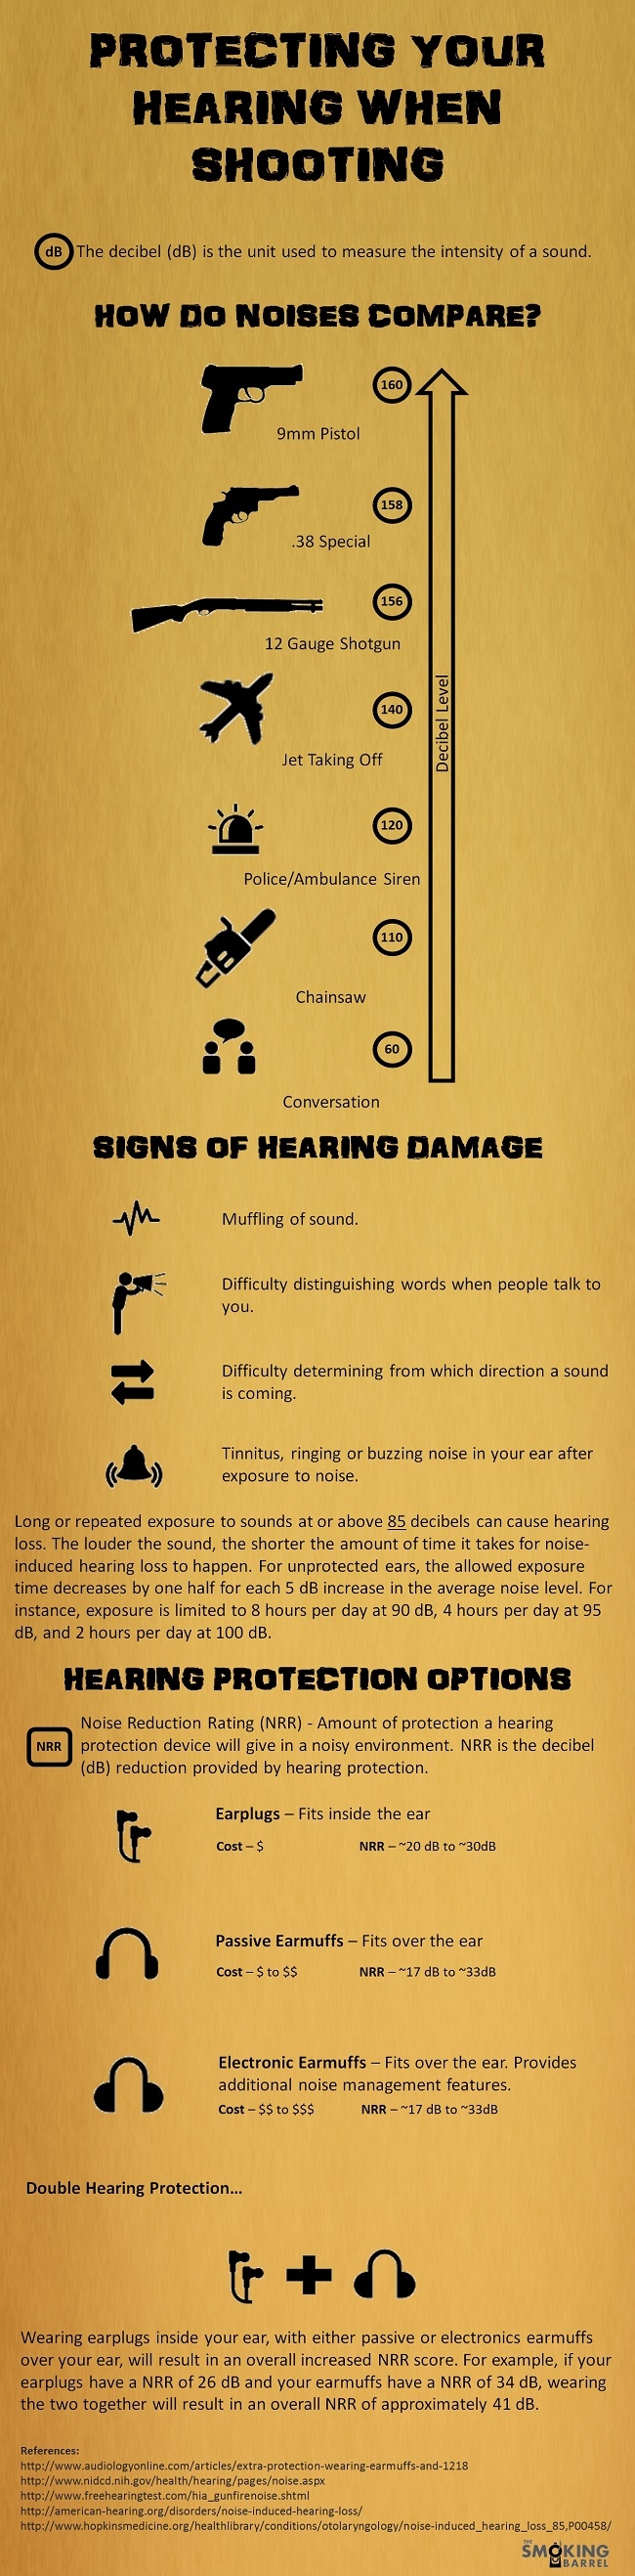 How Shooting Affects Your Hearing